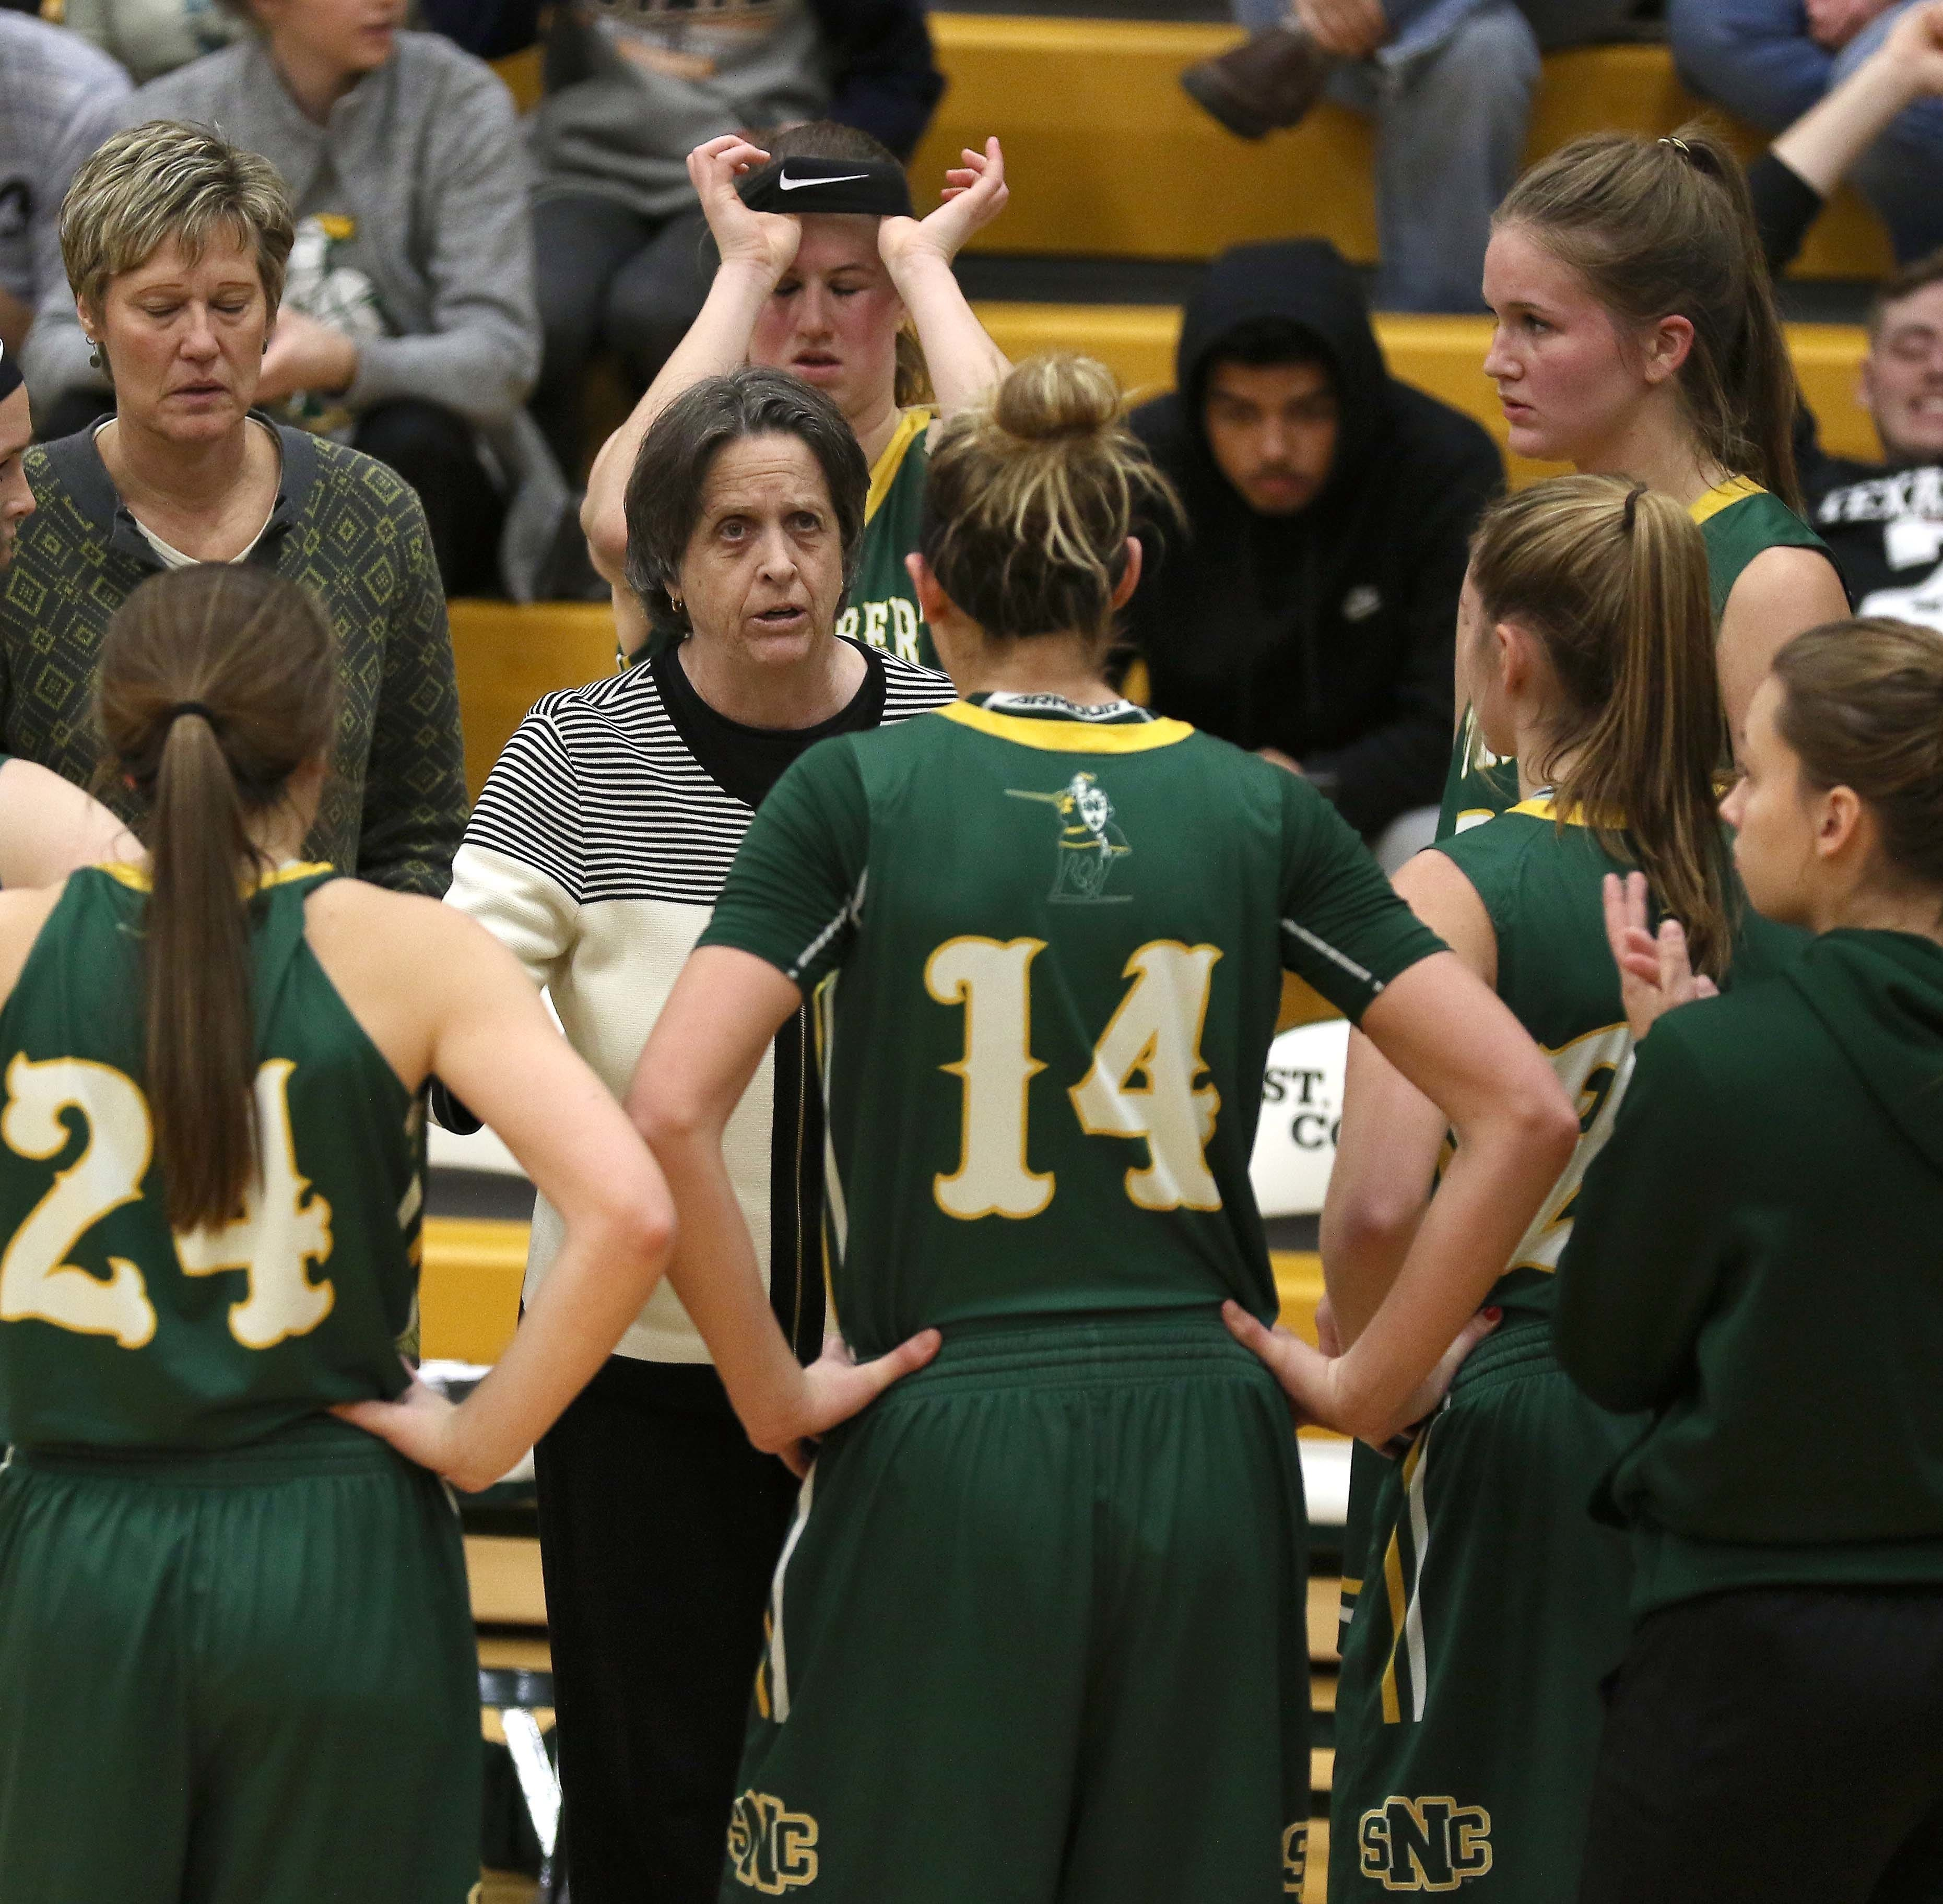 St. Norbert College athletics will move to new conference in 2020